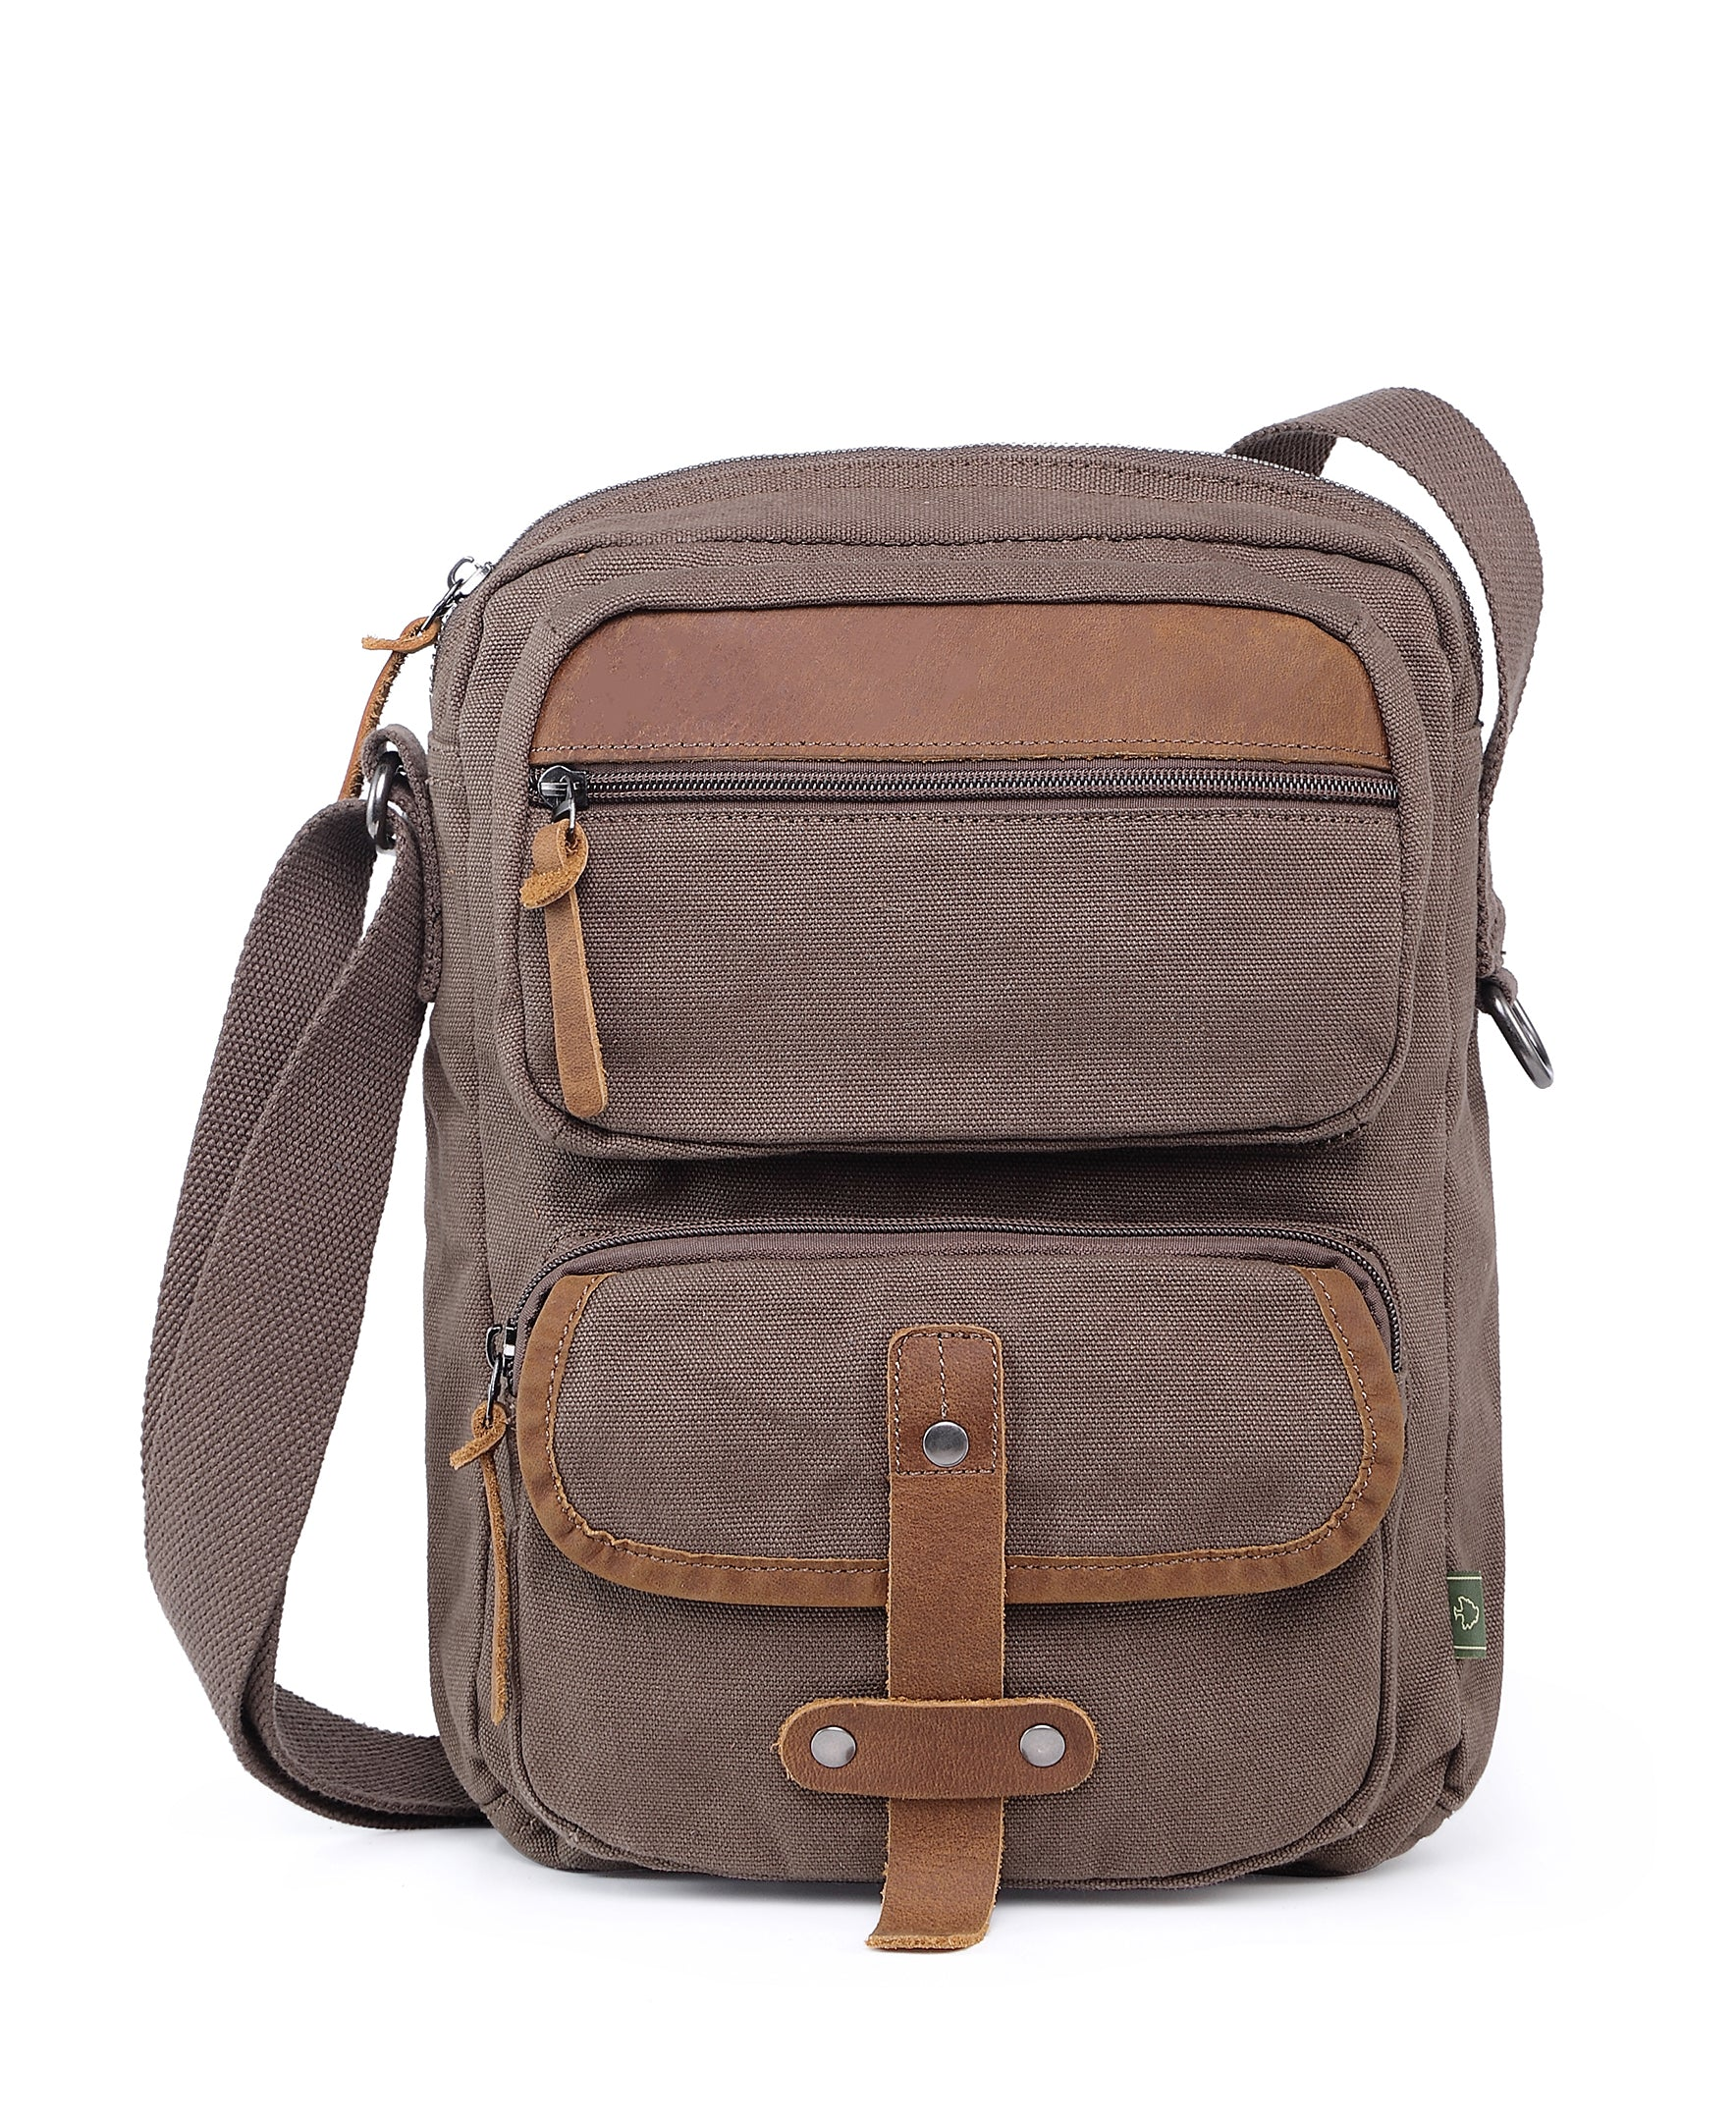 Sun Smell Canvas Crossbody